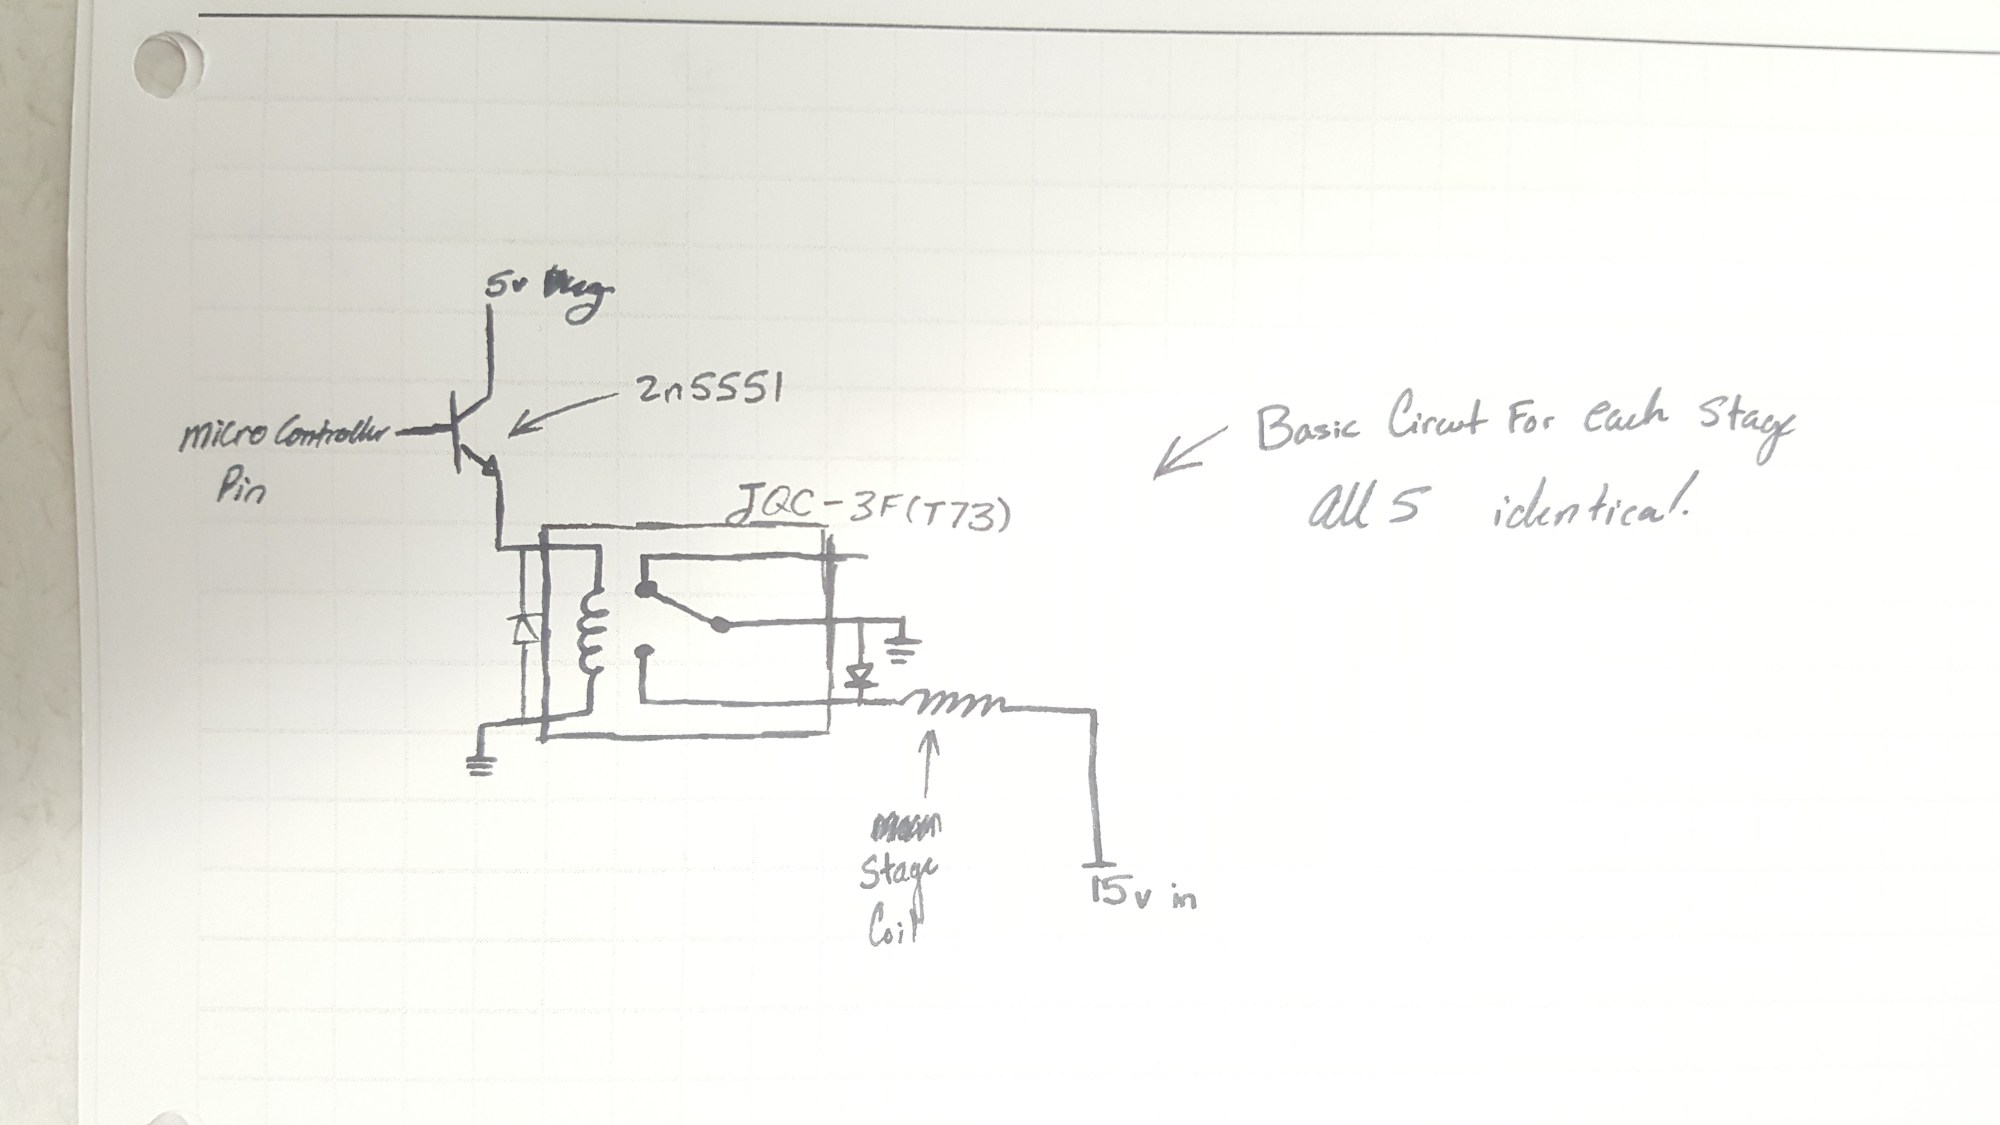 hight resolution of the micro controller diagram is a bit messy it uses an lm7805 linear regulator with a 330uf electrolytic cap and a 22pf ceramic cap on the output other